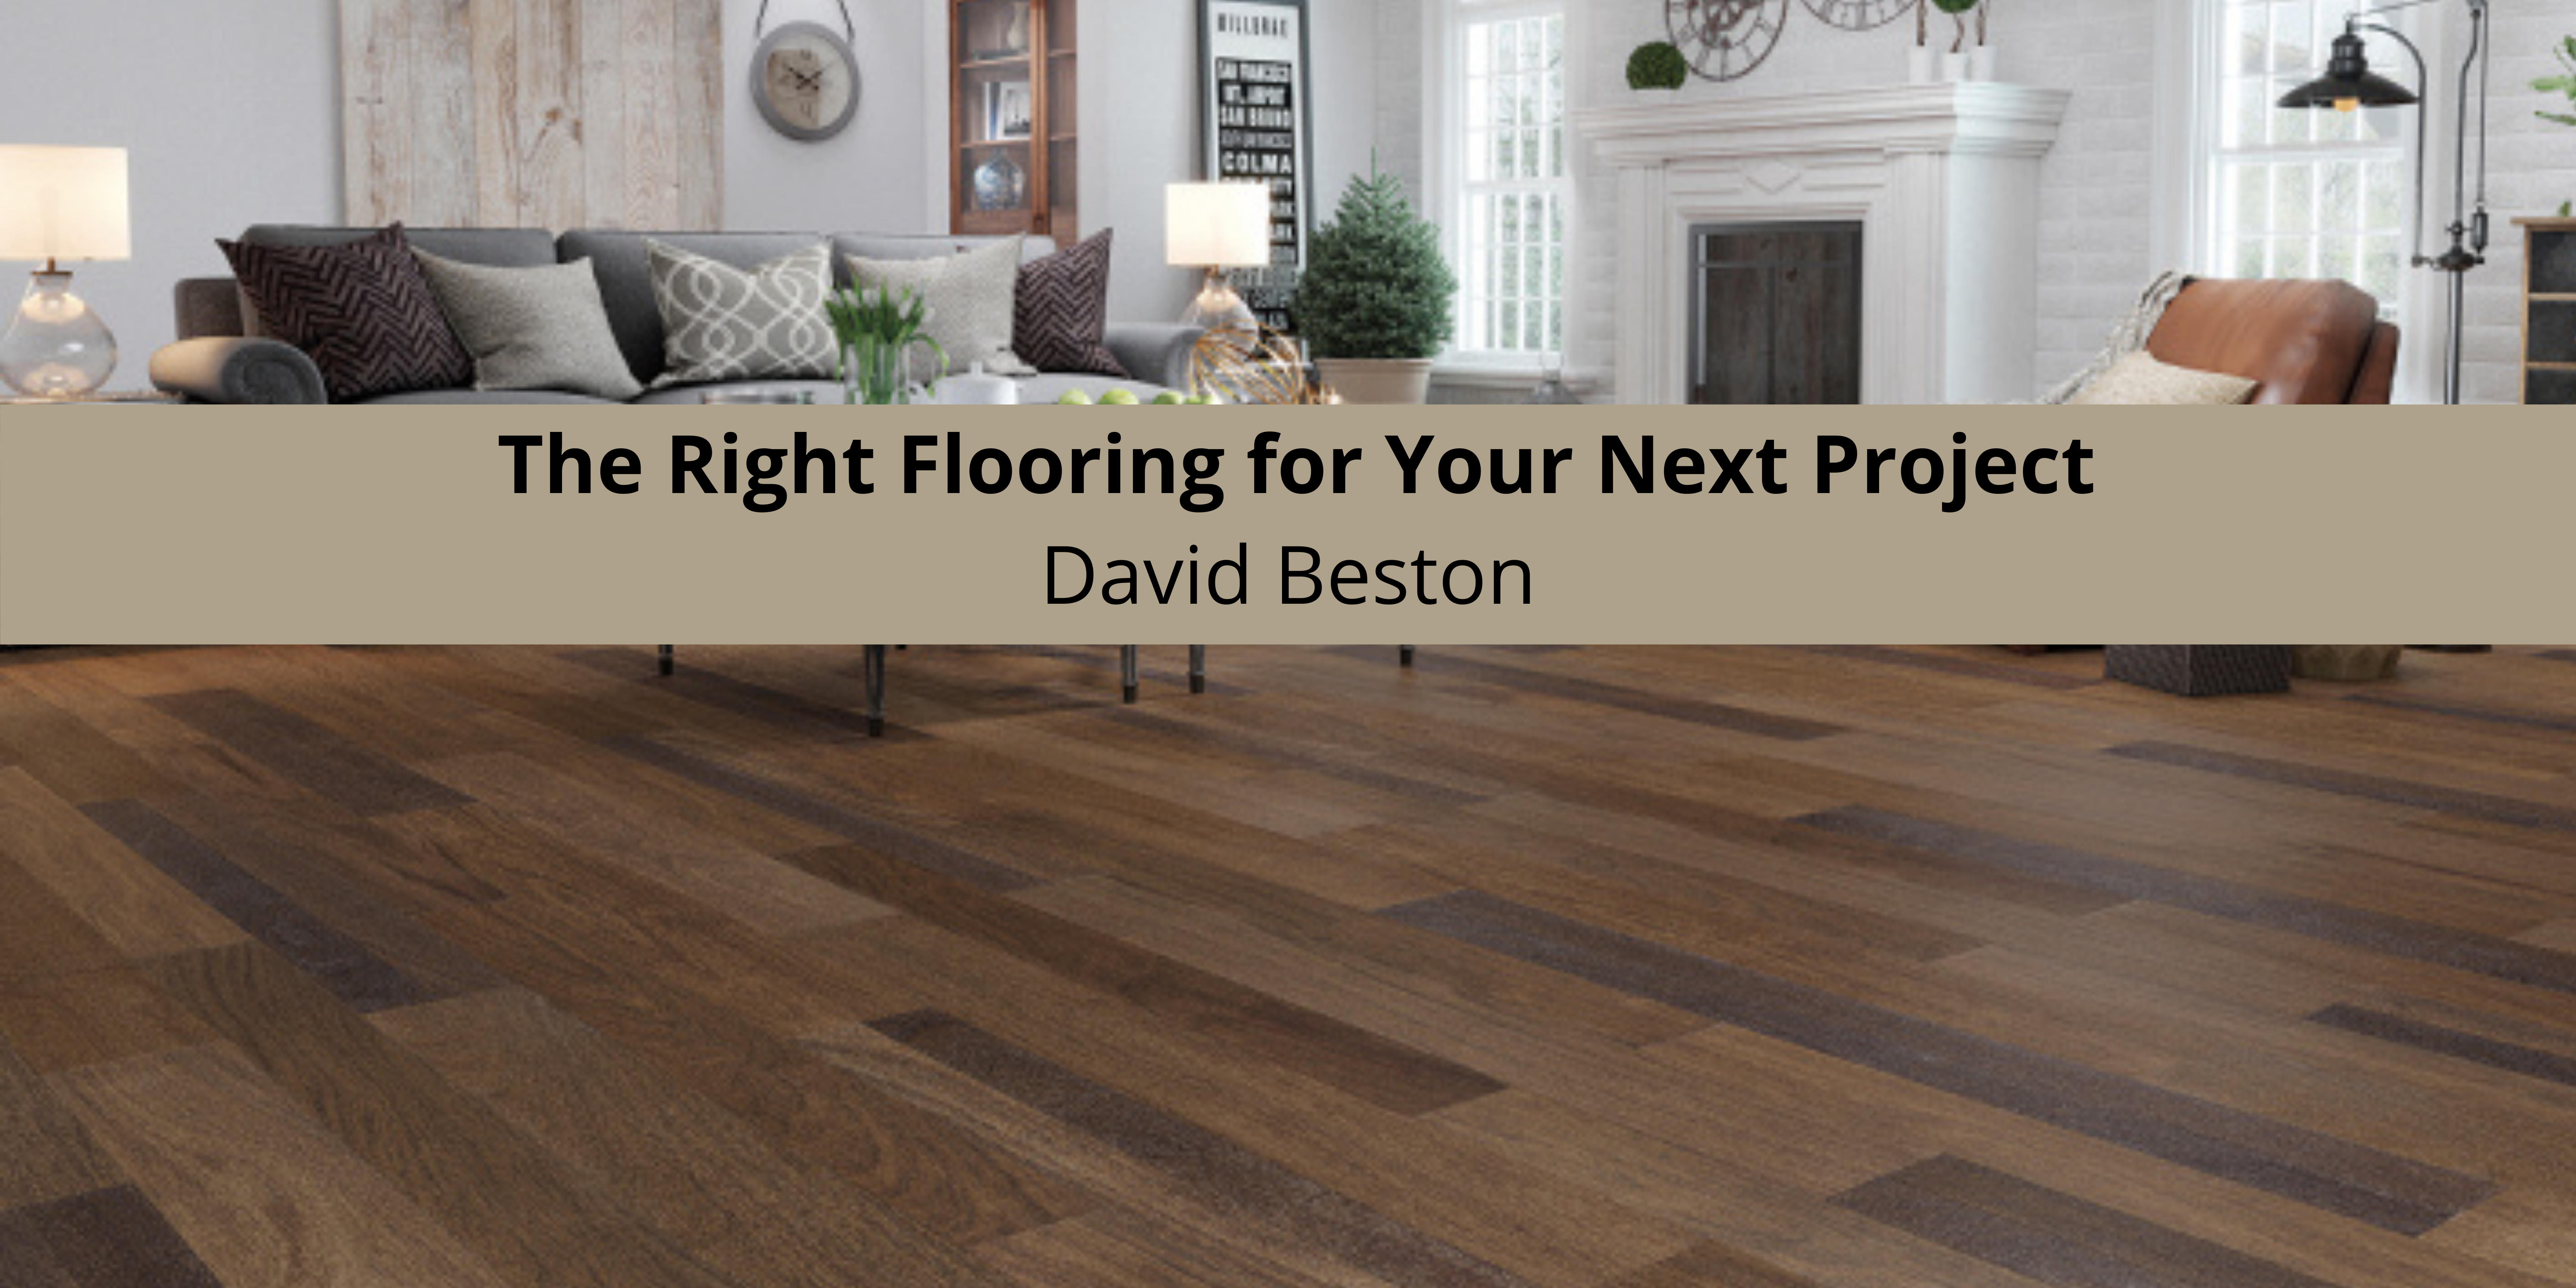 The Right Flooring for Your Next Project